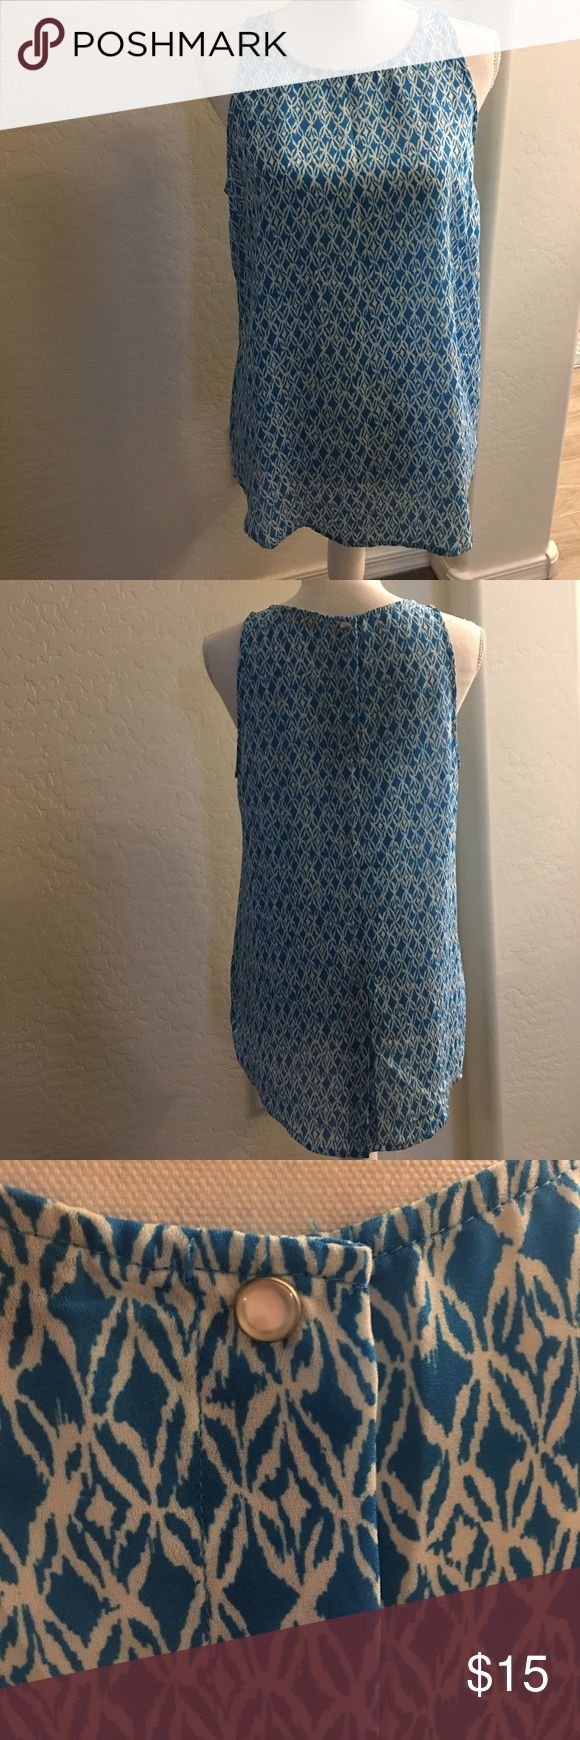 Blue print tank top - women's Medium Blue and white women's tank top, clear gen button in back, bottom has open split in middle 6in. Very comfy, perfect for the summer!! Size is medium. Excellent condition, worn once. Willi Smith Tops Tank Tops